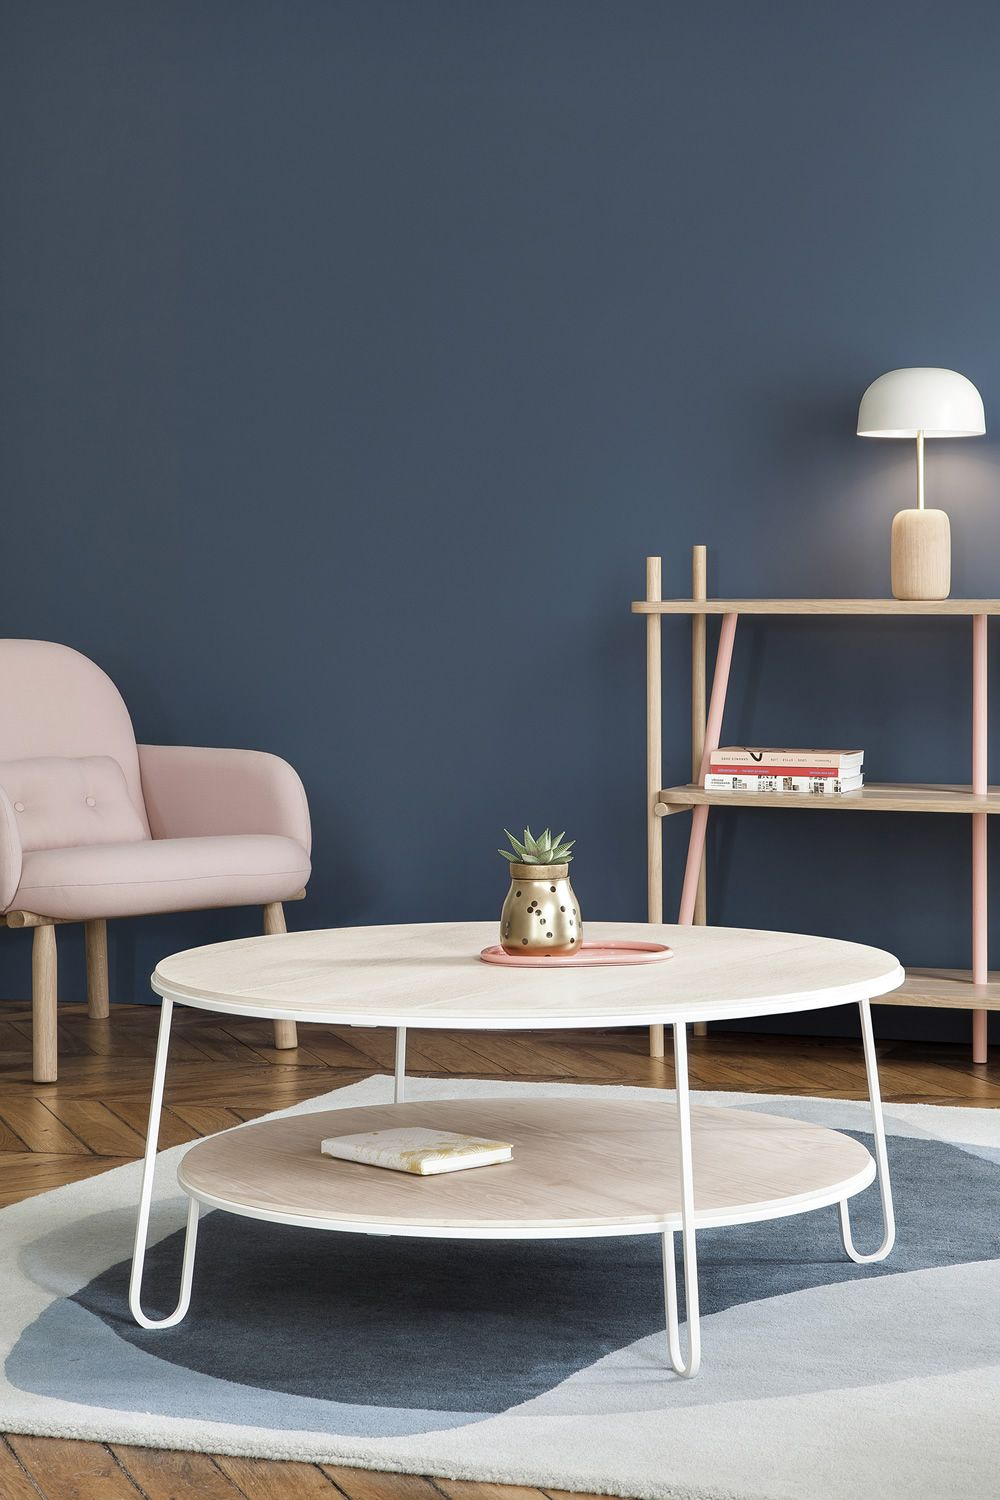 Chairs and tables: Eugénie